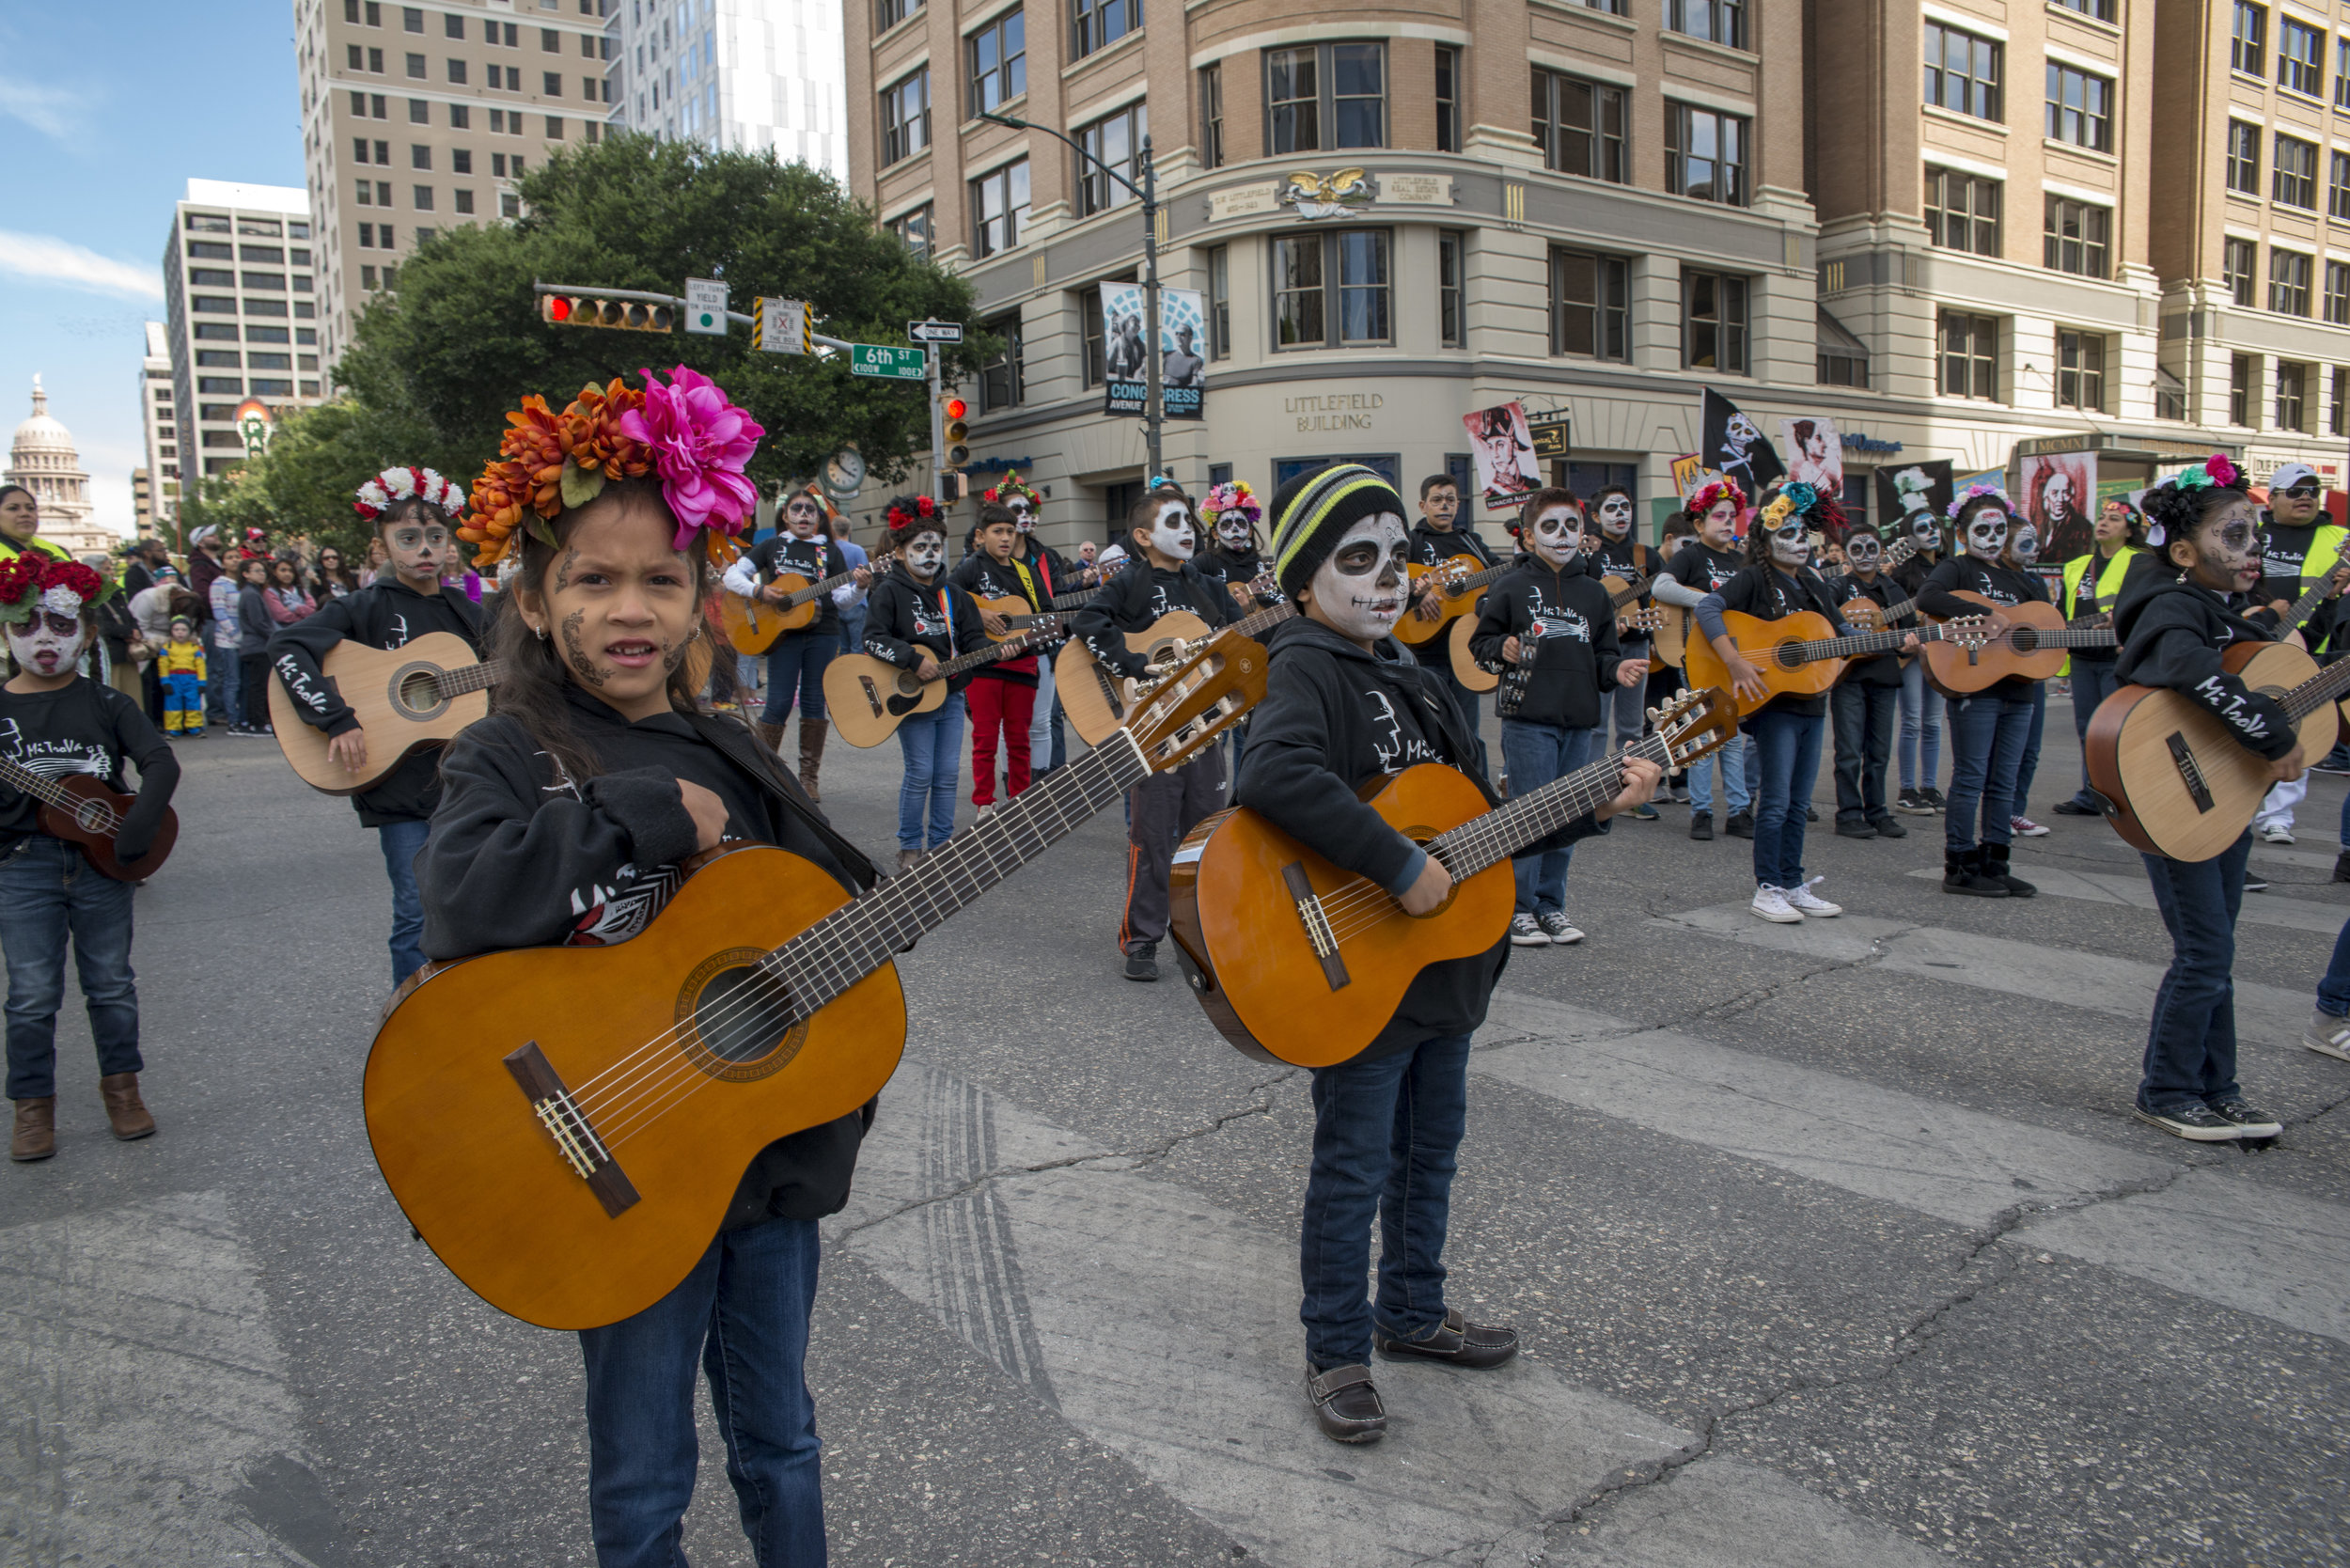 Your sponsorship will help the Mexic-Arte Museum bring positive programming free to the public in the heart of downtown Austin.